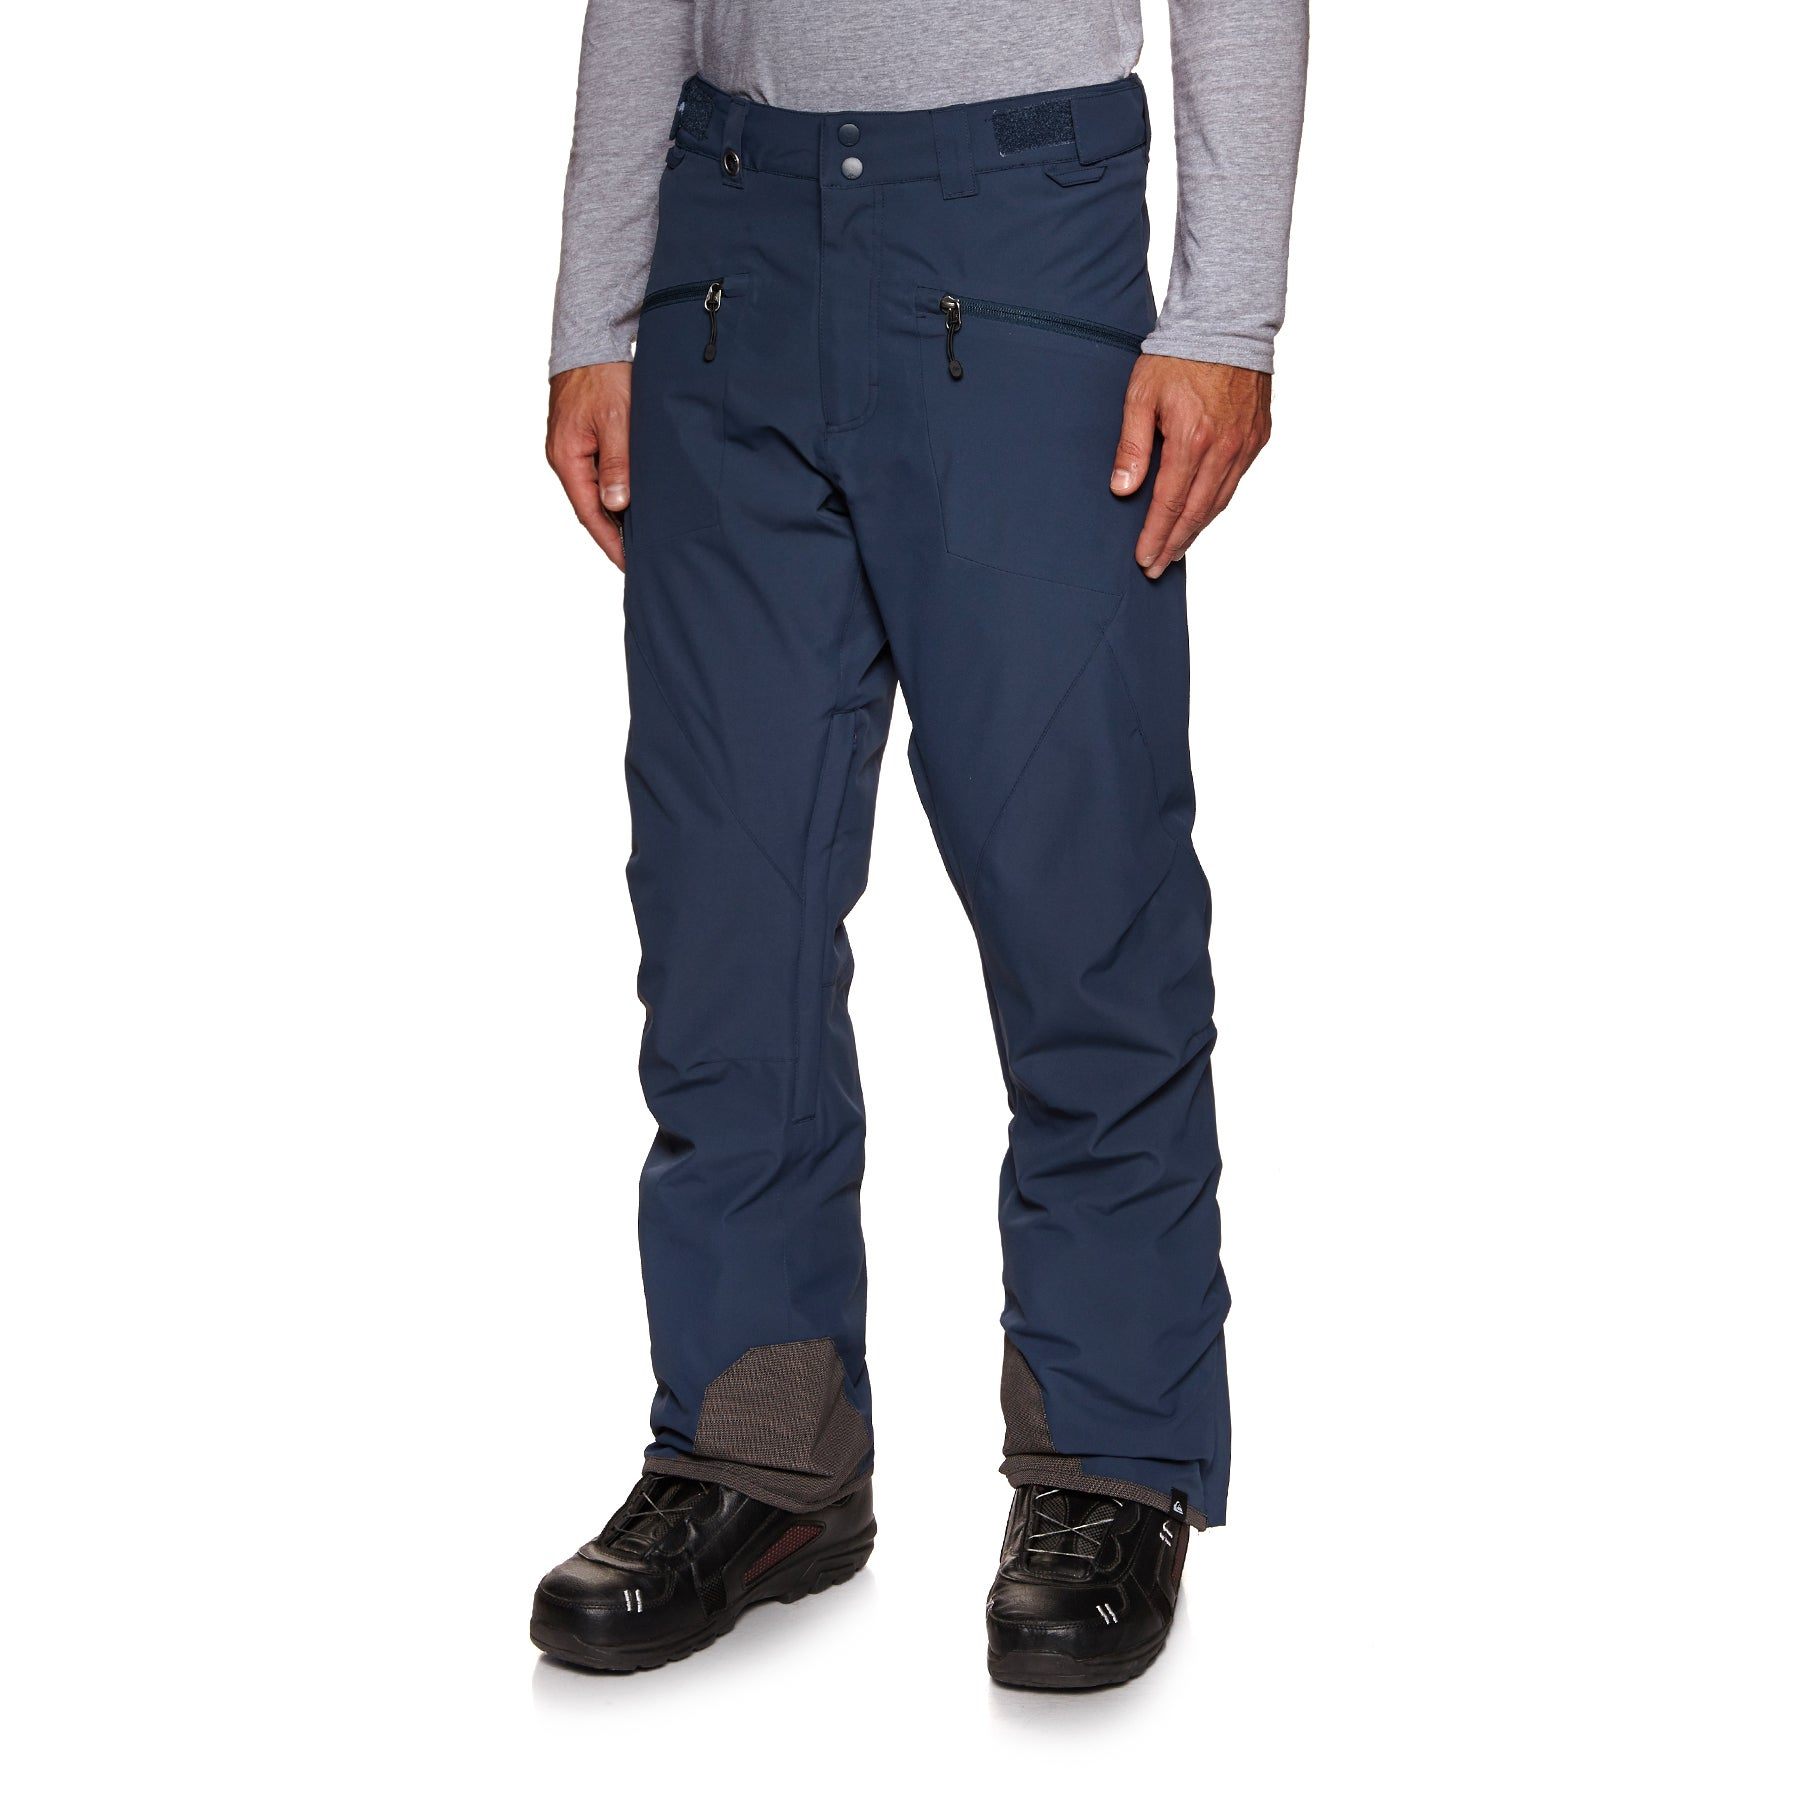 Pantalons pour Snowboard Quiksilver Mens Boundry - Dress Blues